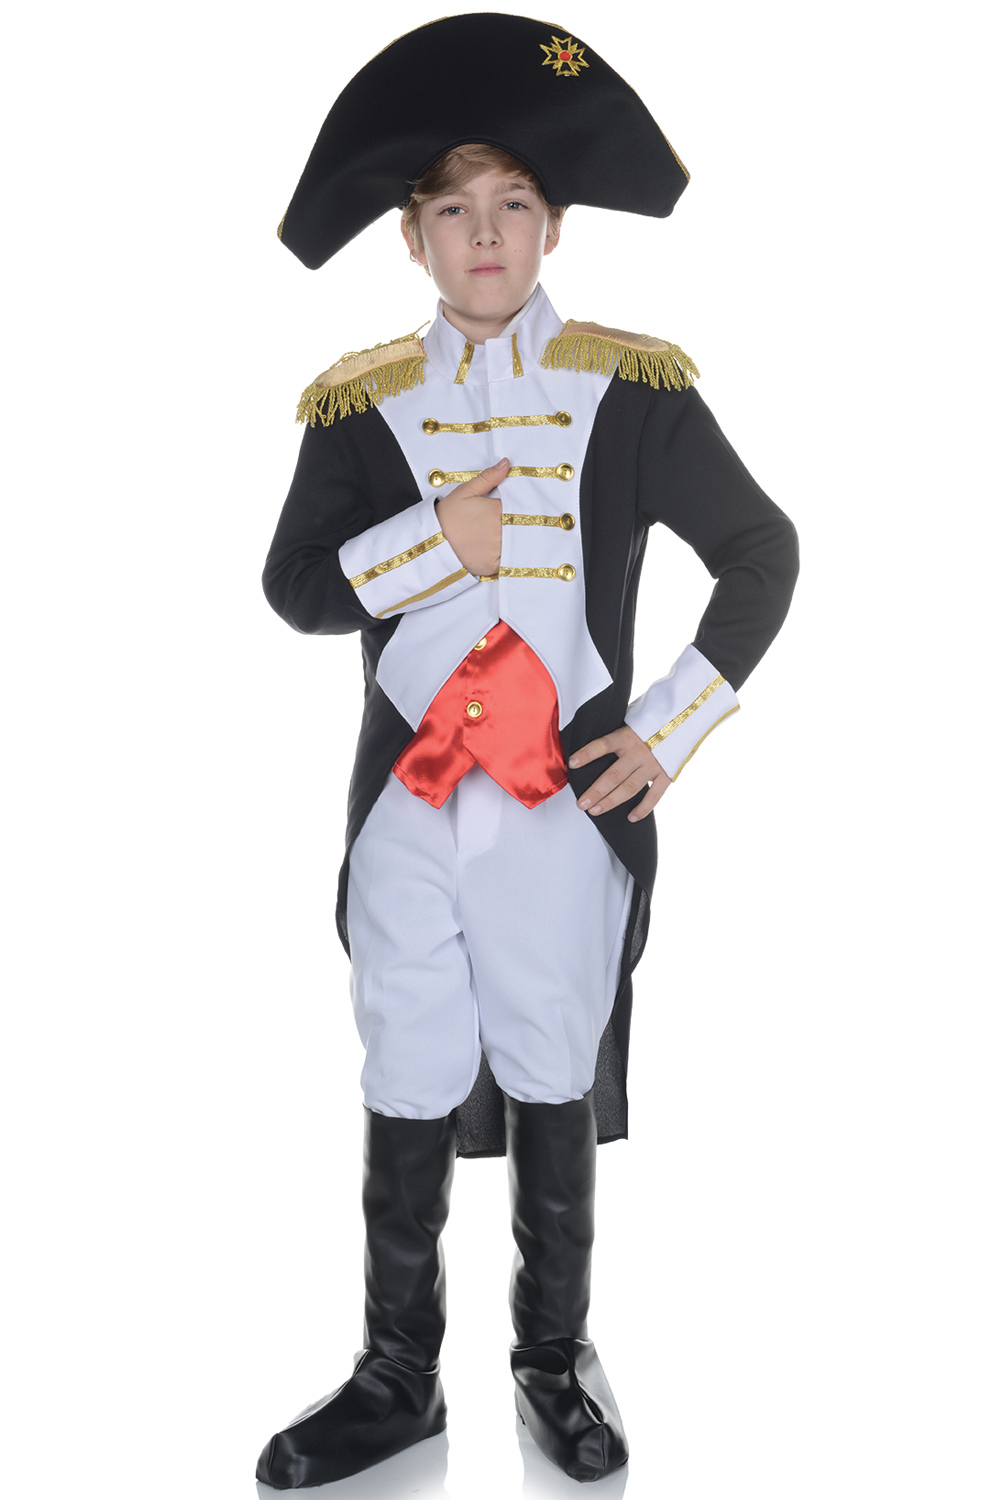 Famous people costumes celebrity diy dress up ideas napoleon child costume solutioingenieria Image collections